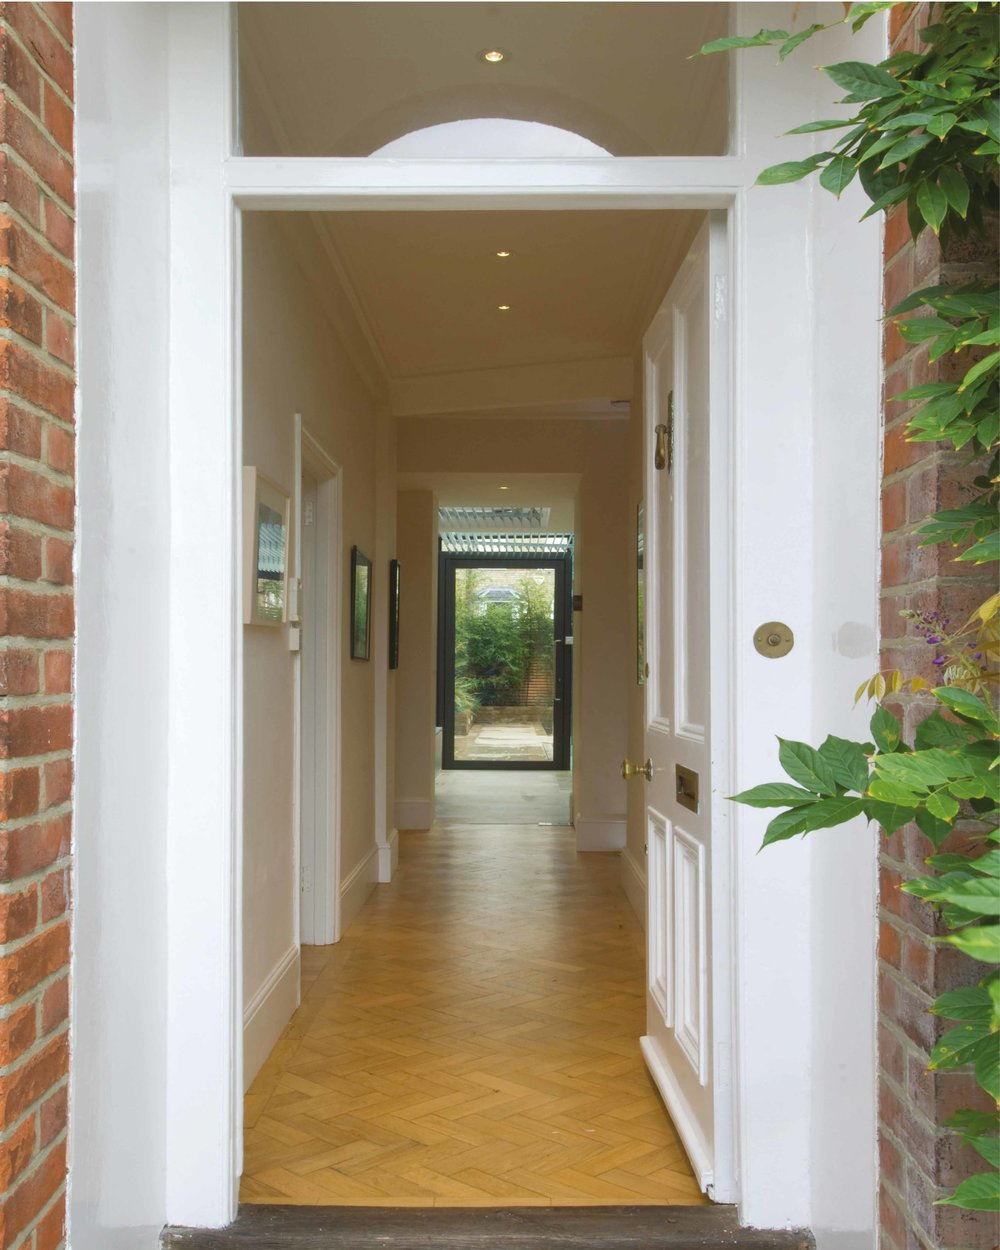 The extension harmoniously connects all the ground floor spaces together.